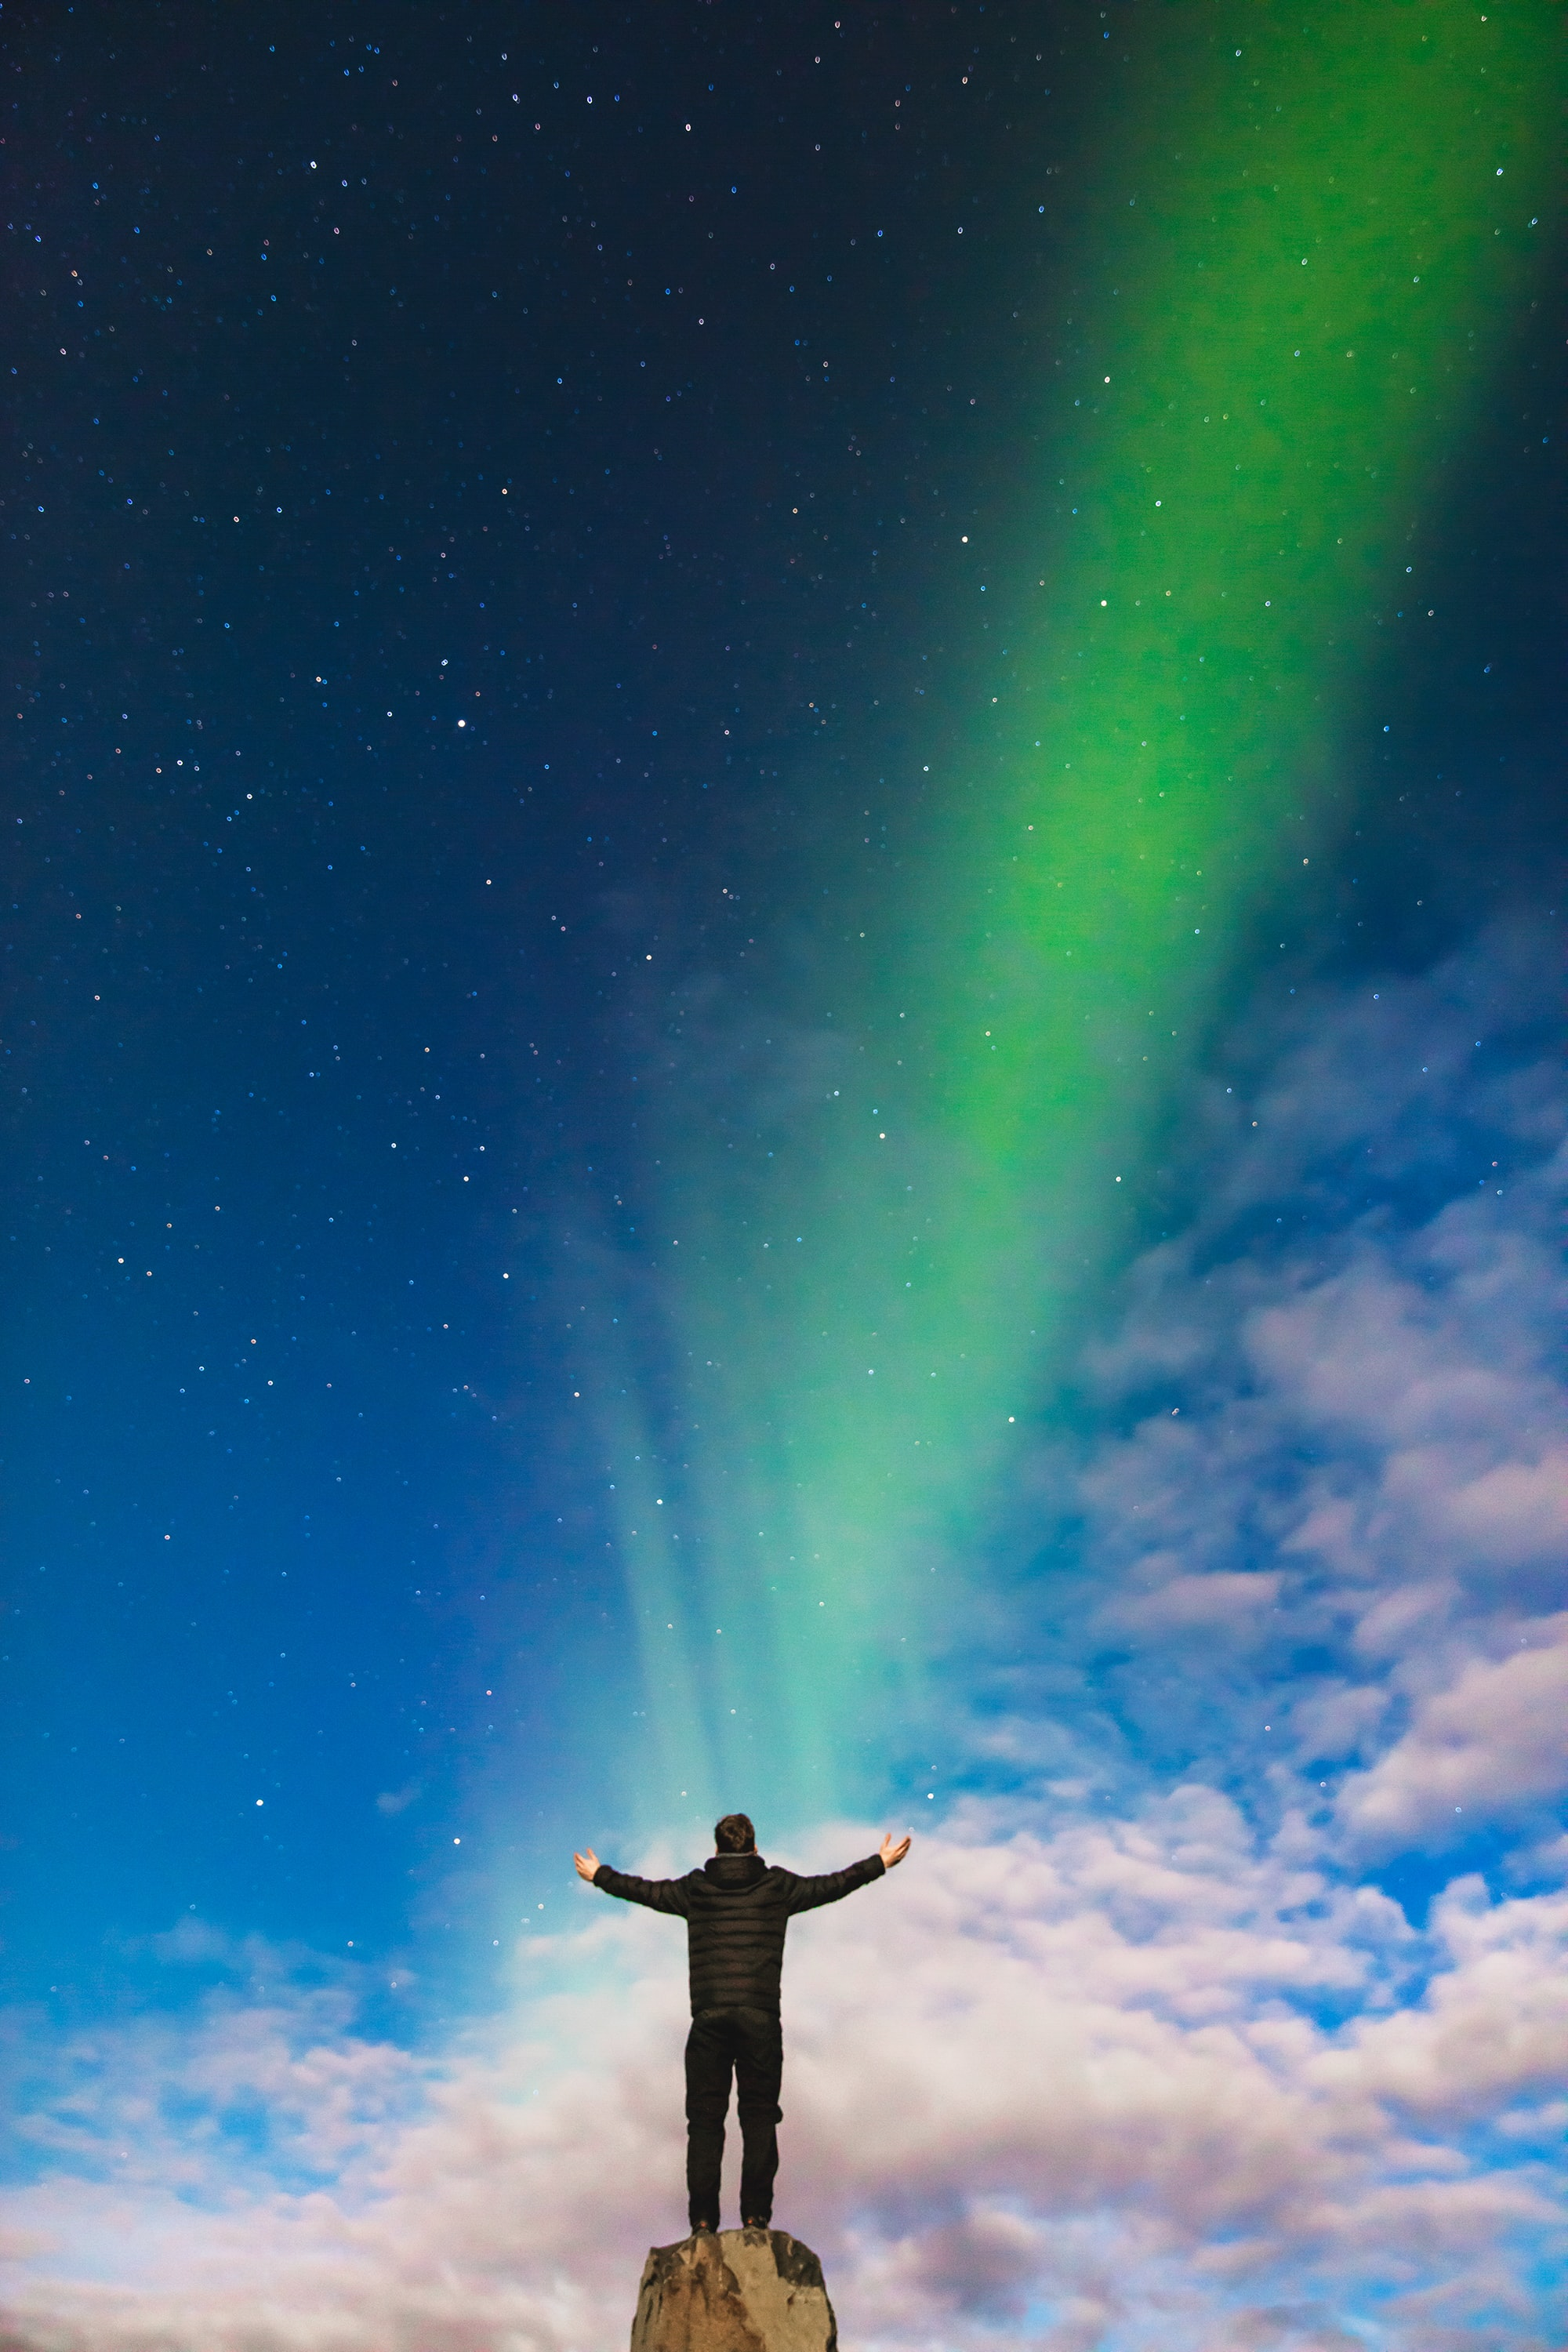 man standing on rock under green aurora borealis and white clouds